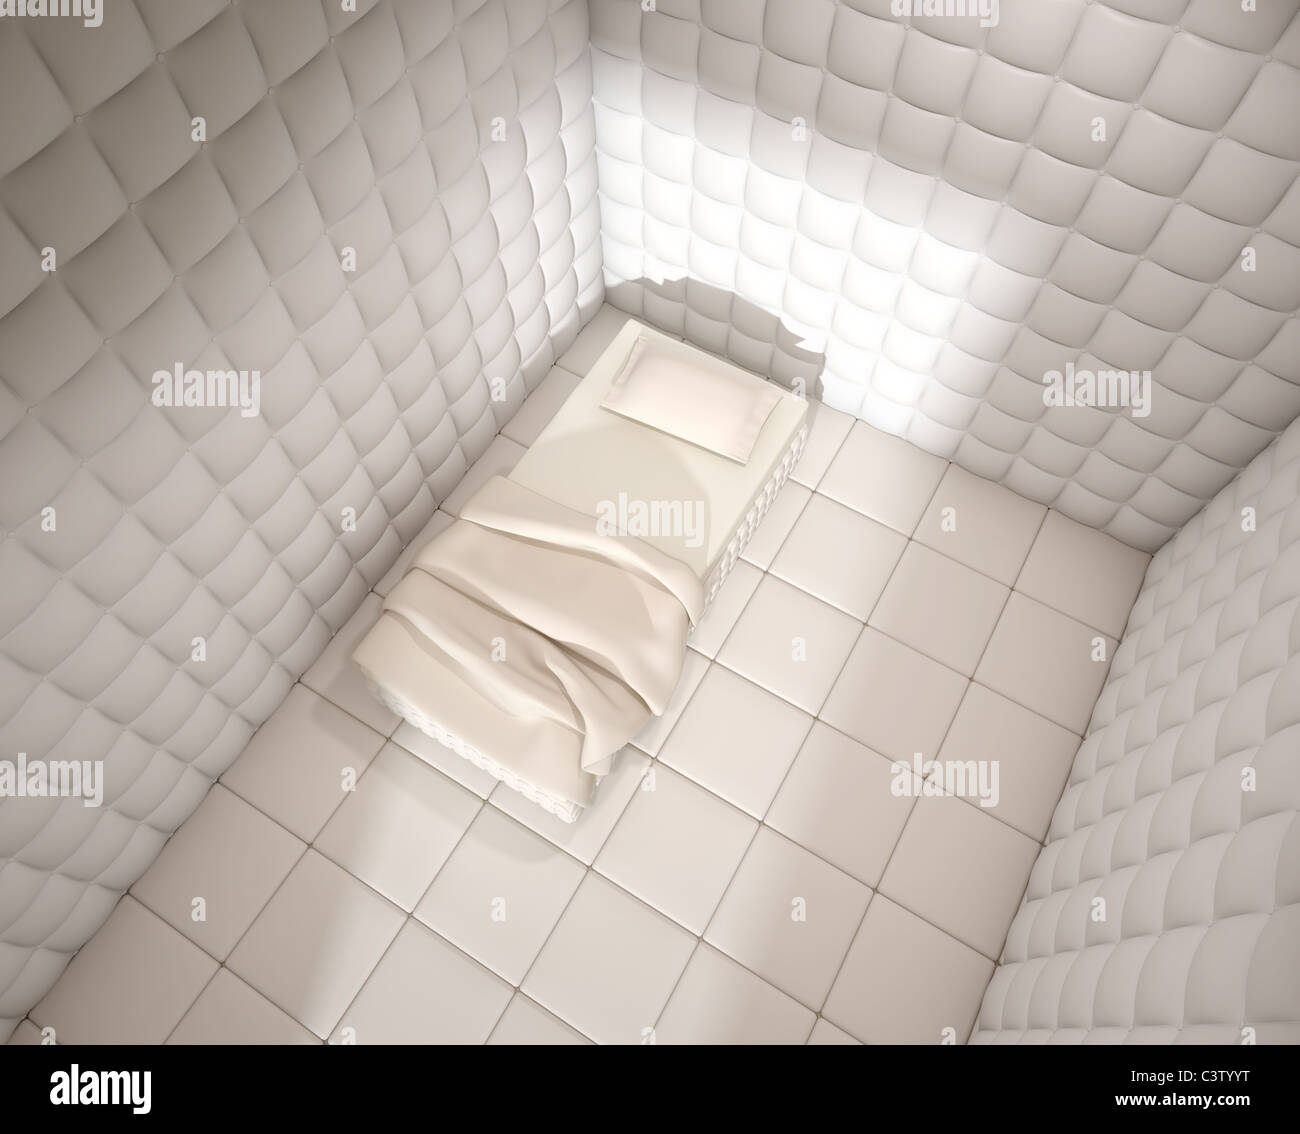 mental hospital padded room seen from above with a single bed Stock Photo